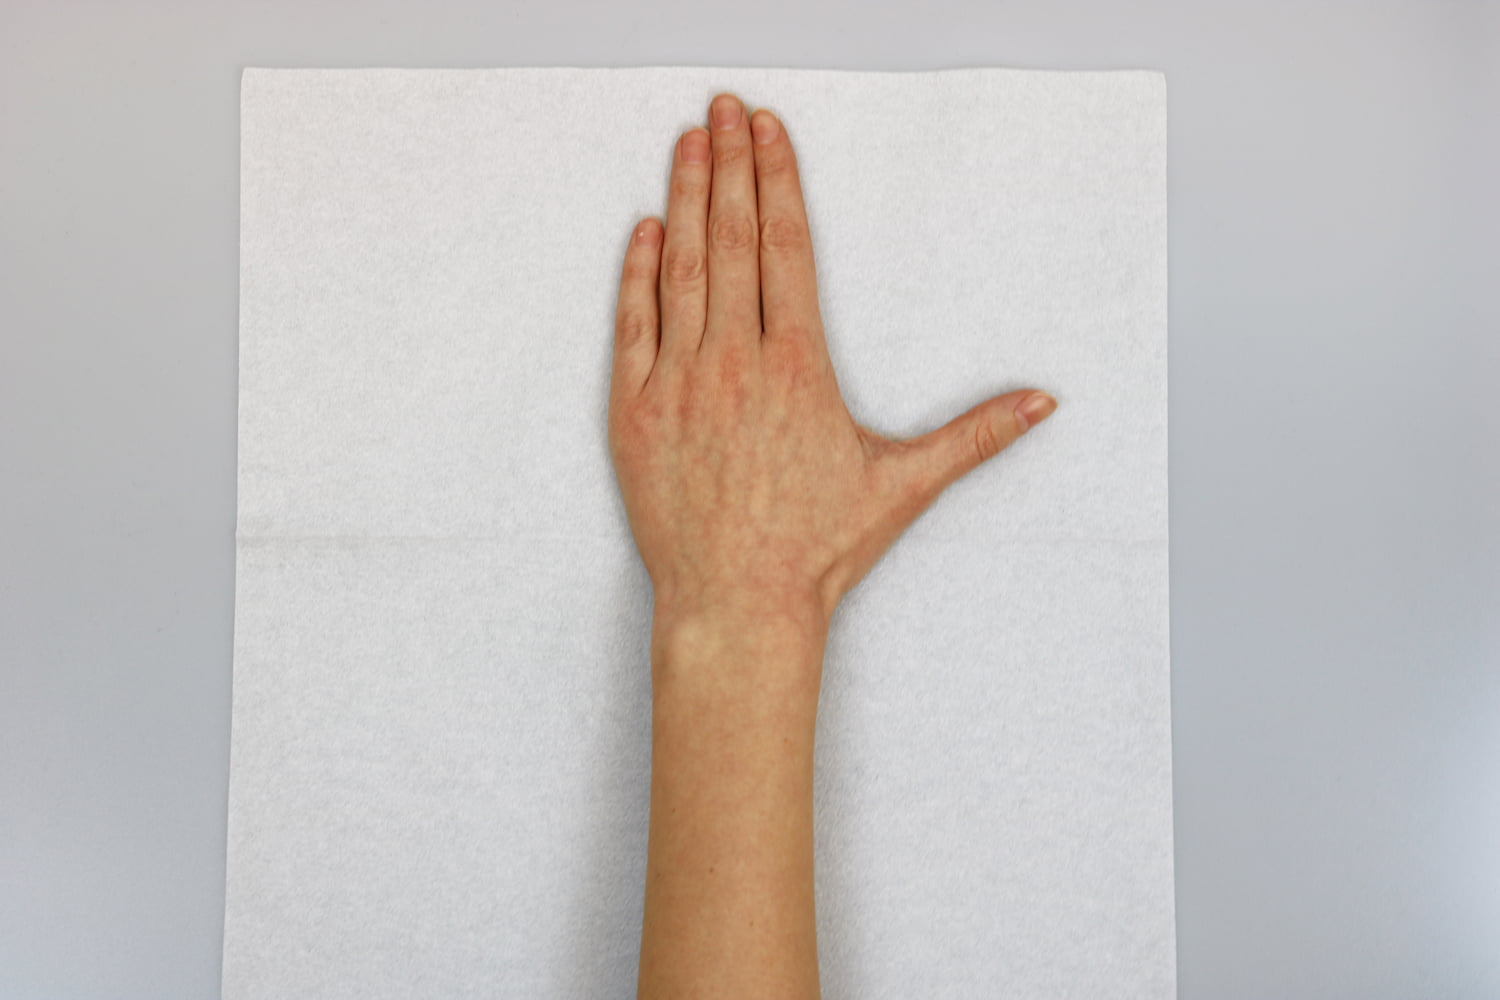 Hand positioned on a paper towel to make a pattern for an orthosis.